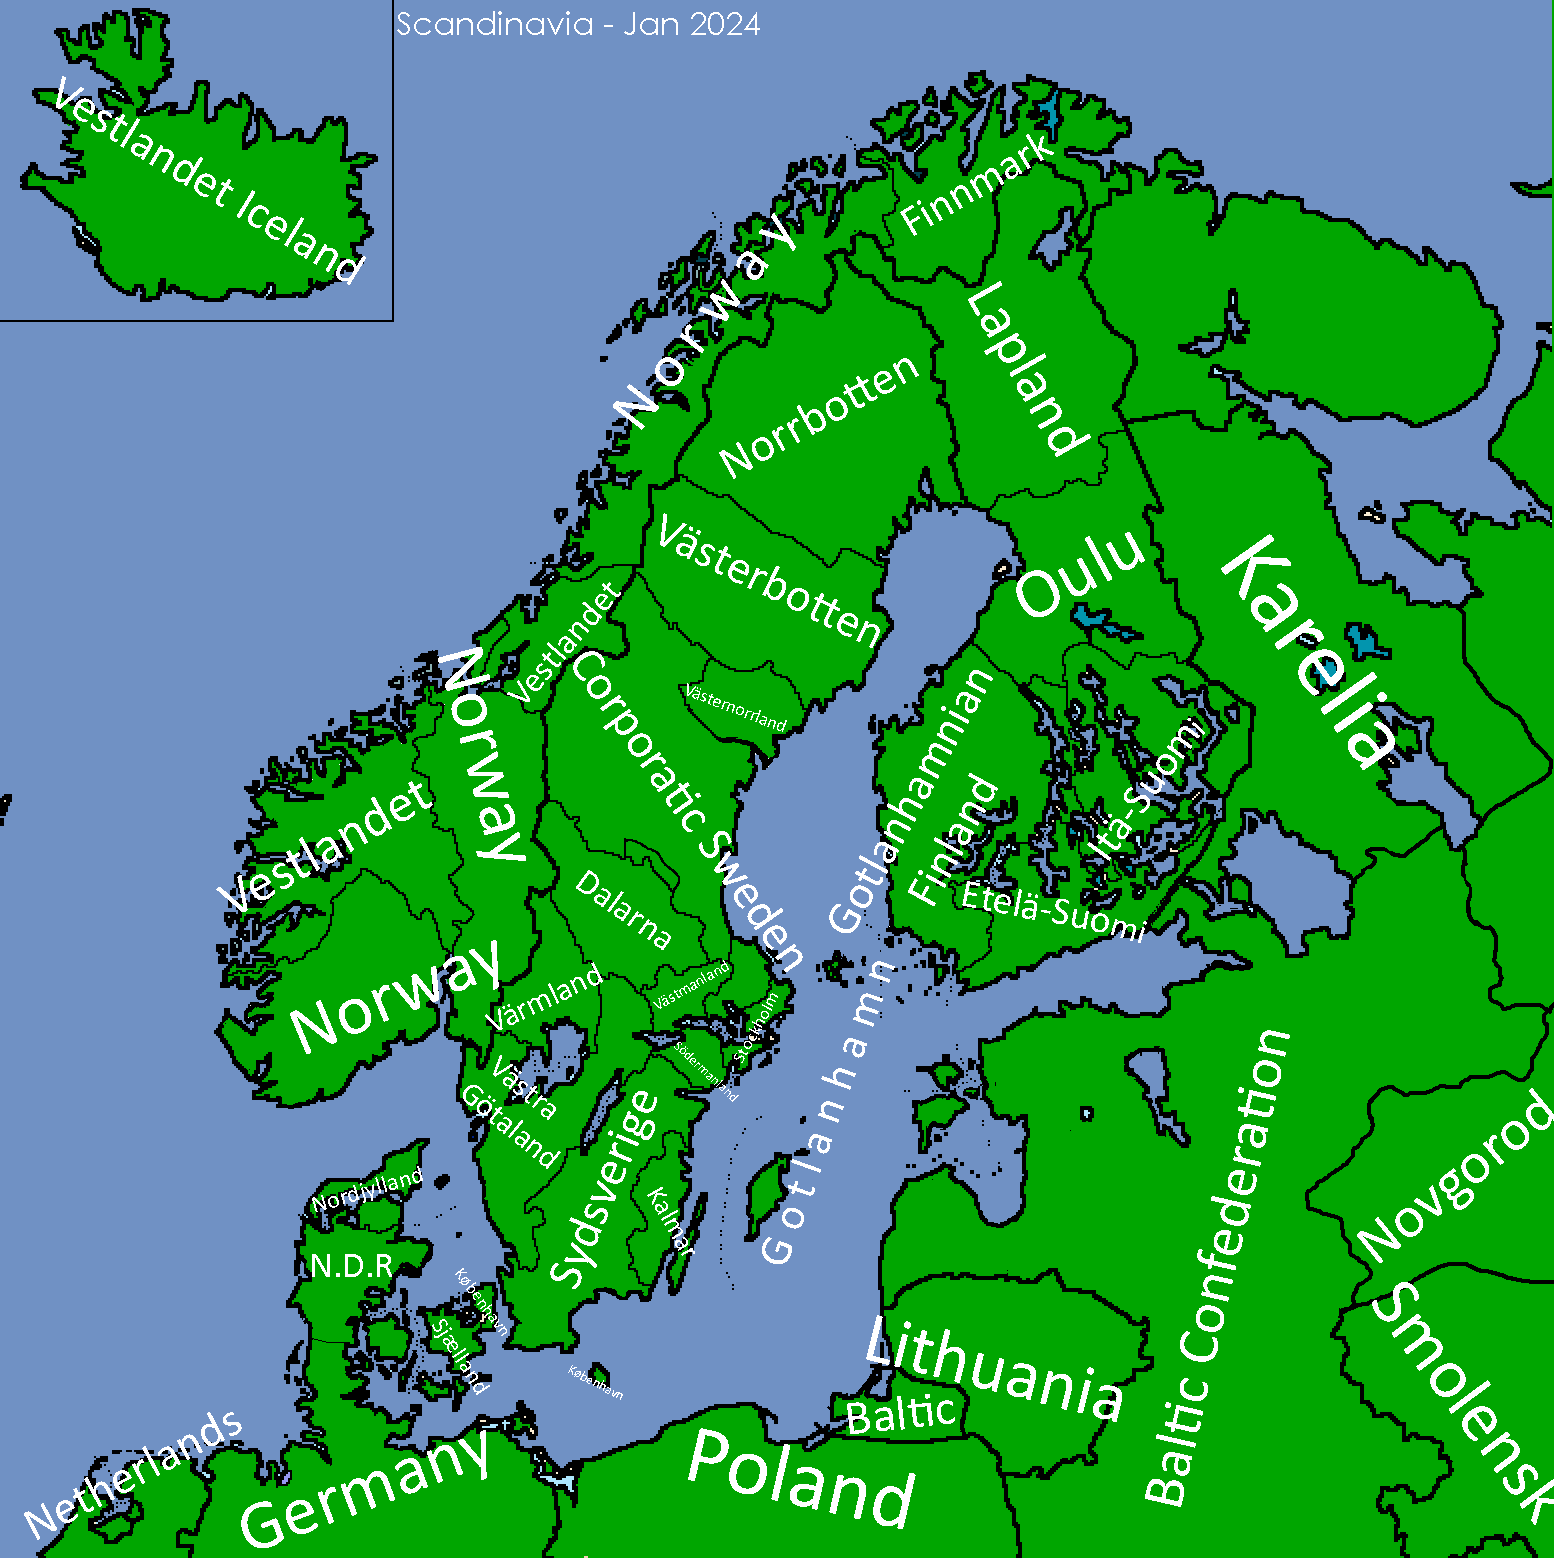 Divided Scandinavia (Map Game) (Archive 2 ... on europe map, italy map, greece map, britain map, scotland map, austria map, france map, united kingdom map, danube river map, africa map, netherlands map, mediterranean map, portugal map, germany map, tourist map, sweden map, iberian peninsula map, iceland map, switzerland map, scandinavian peninsula map, rhine river map, ural mountains map, england map, america map, ireland map, turkey map, denmark map, strait of gibraltar map, belgium map, norway map, finland map, spain map, uk map, viking map, nordic countries map, the netherlands map,